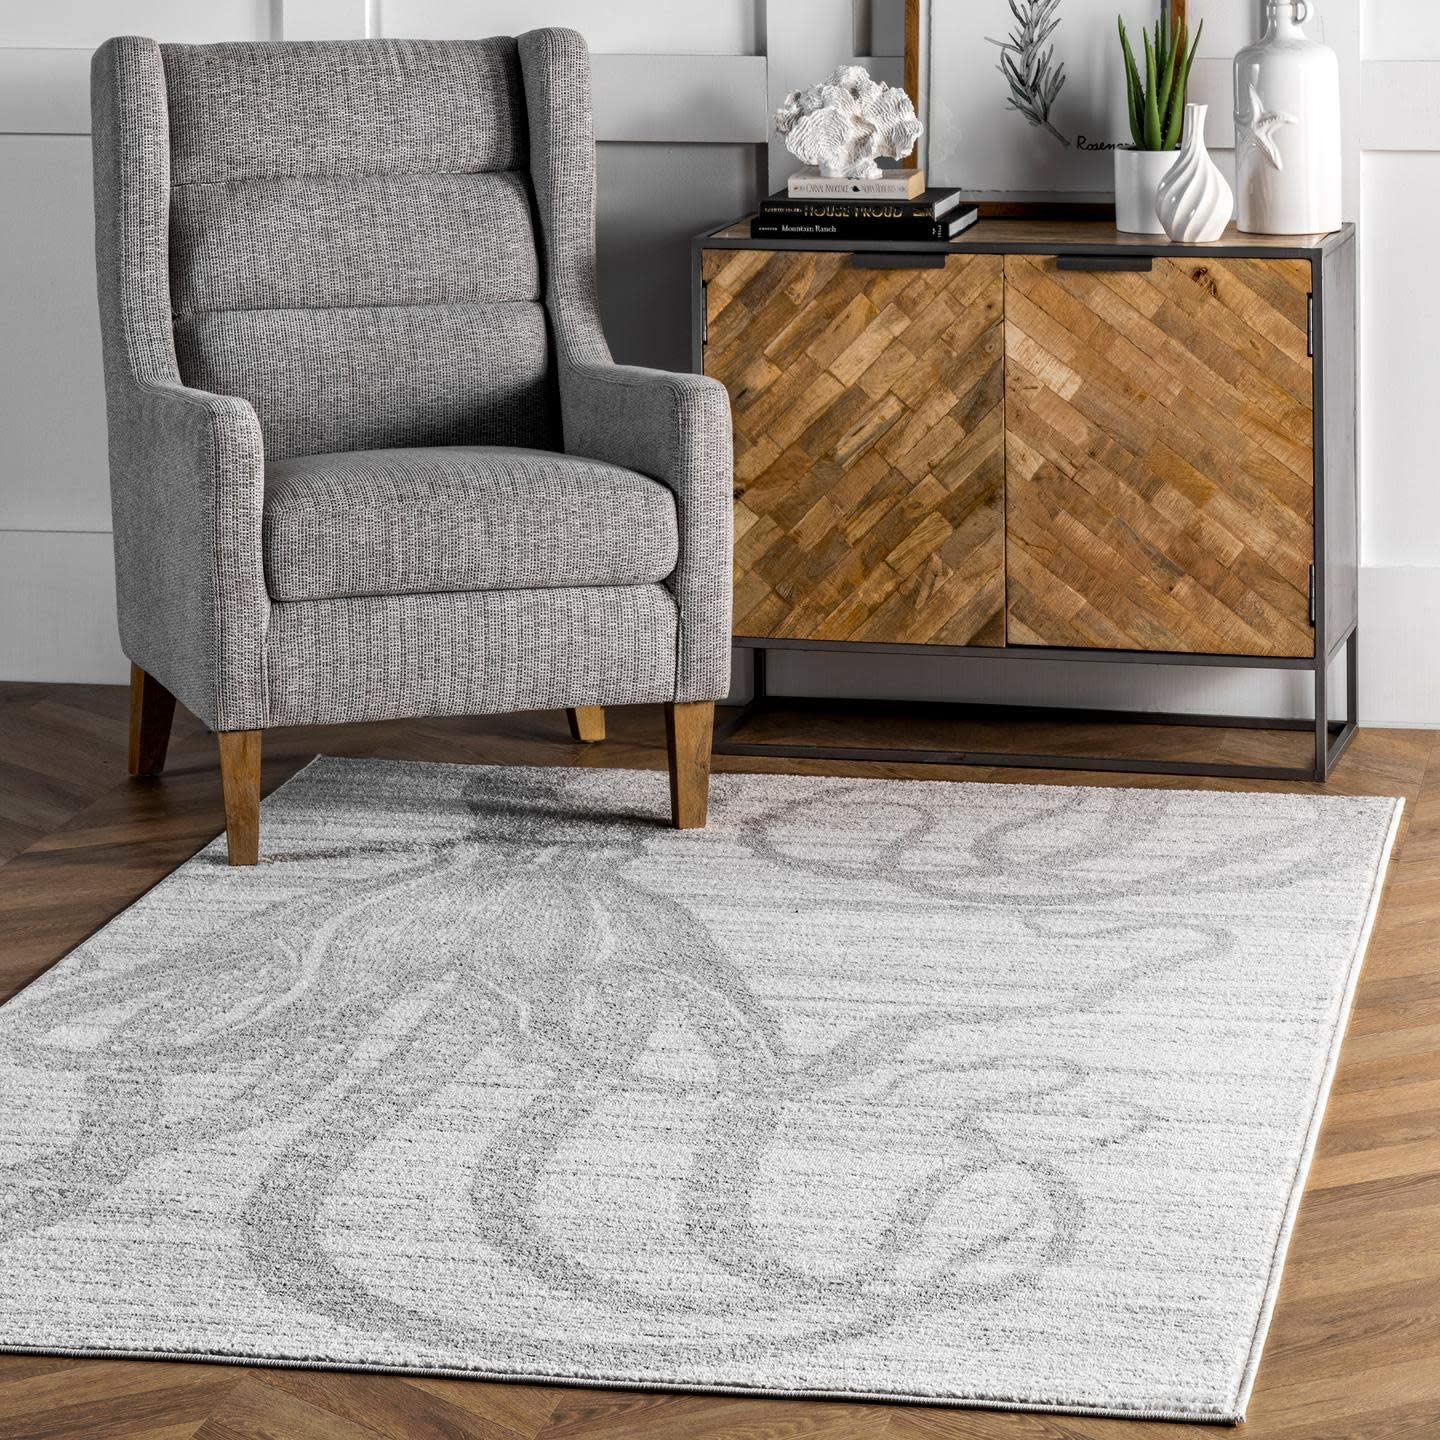 nuLOOM Thomas Paul Octopus Area Rug, 5' x 8', Silver